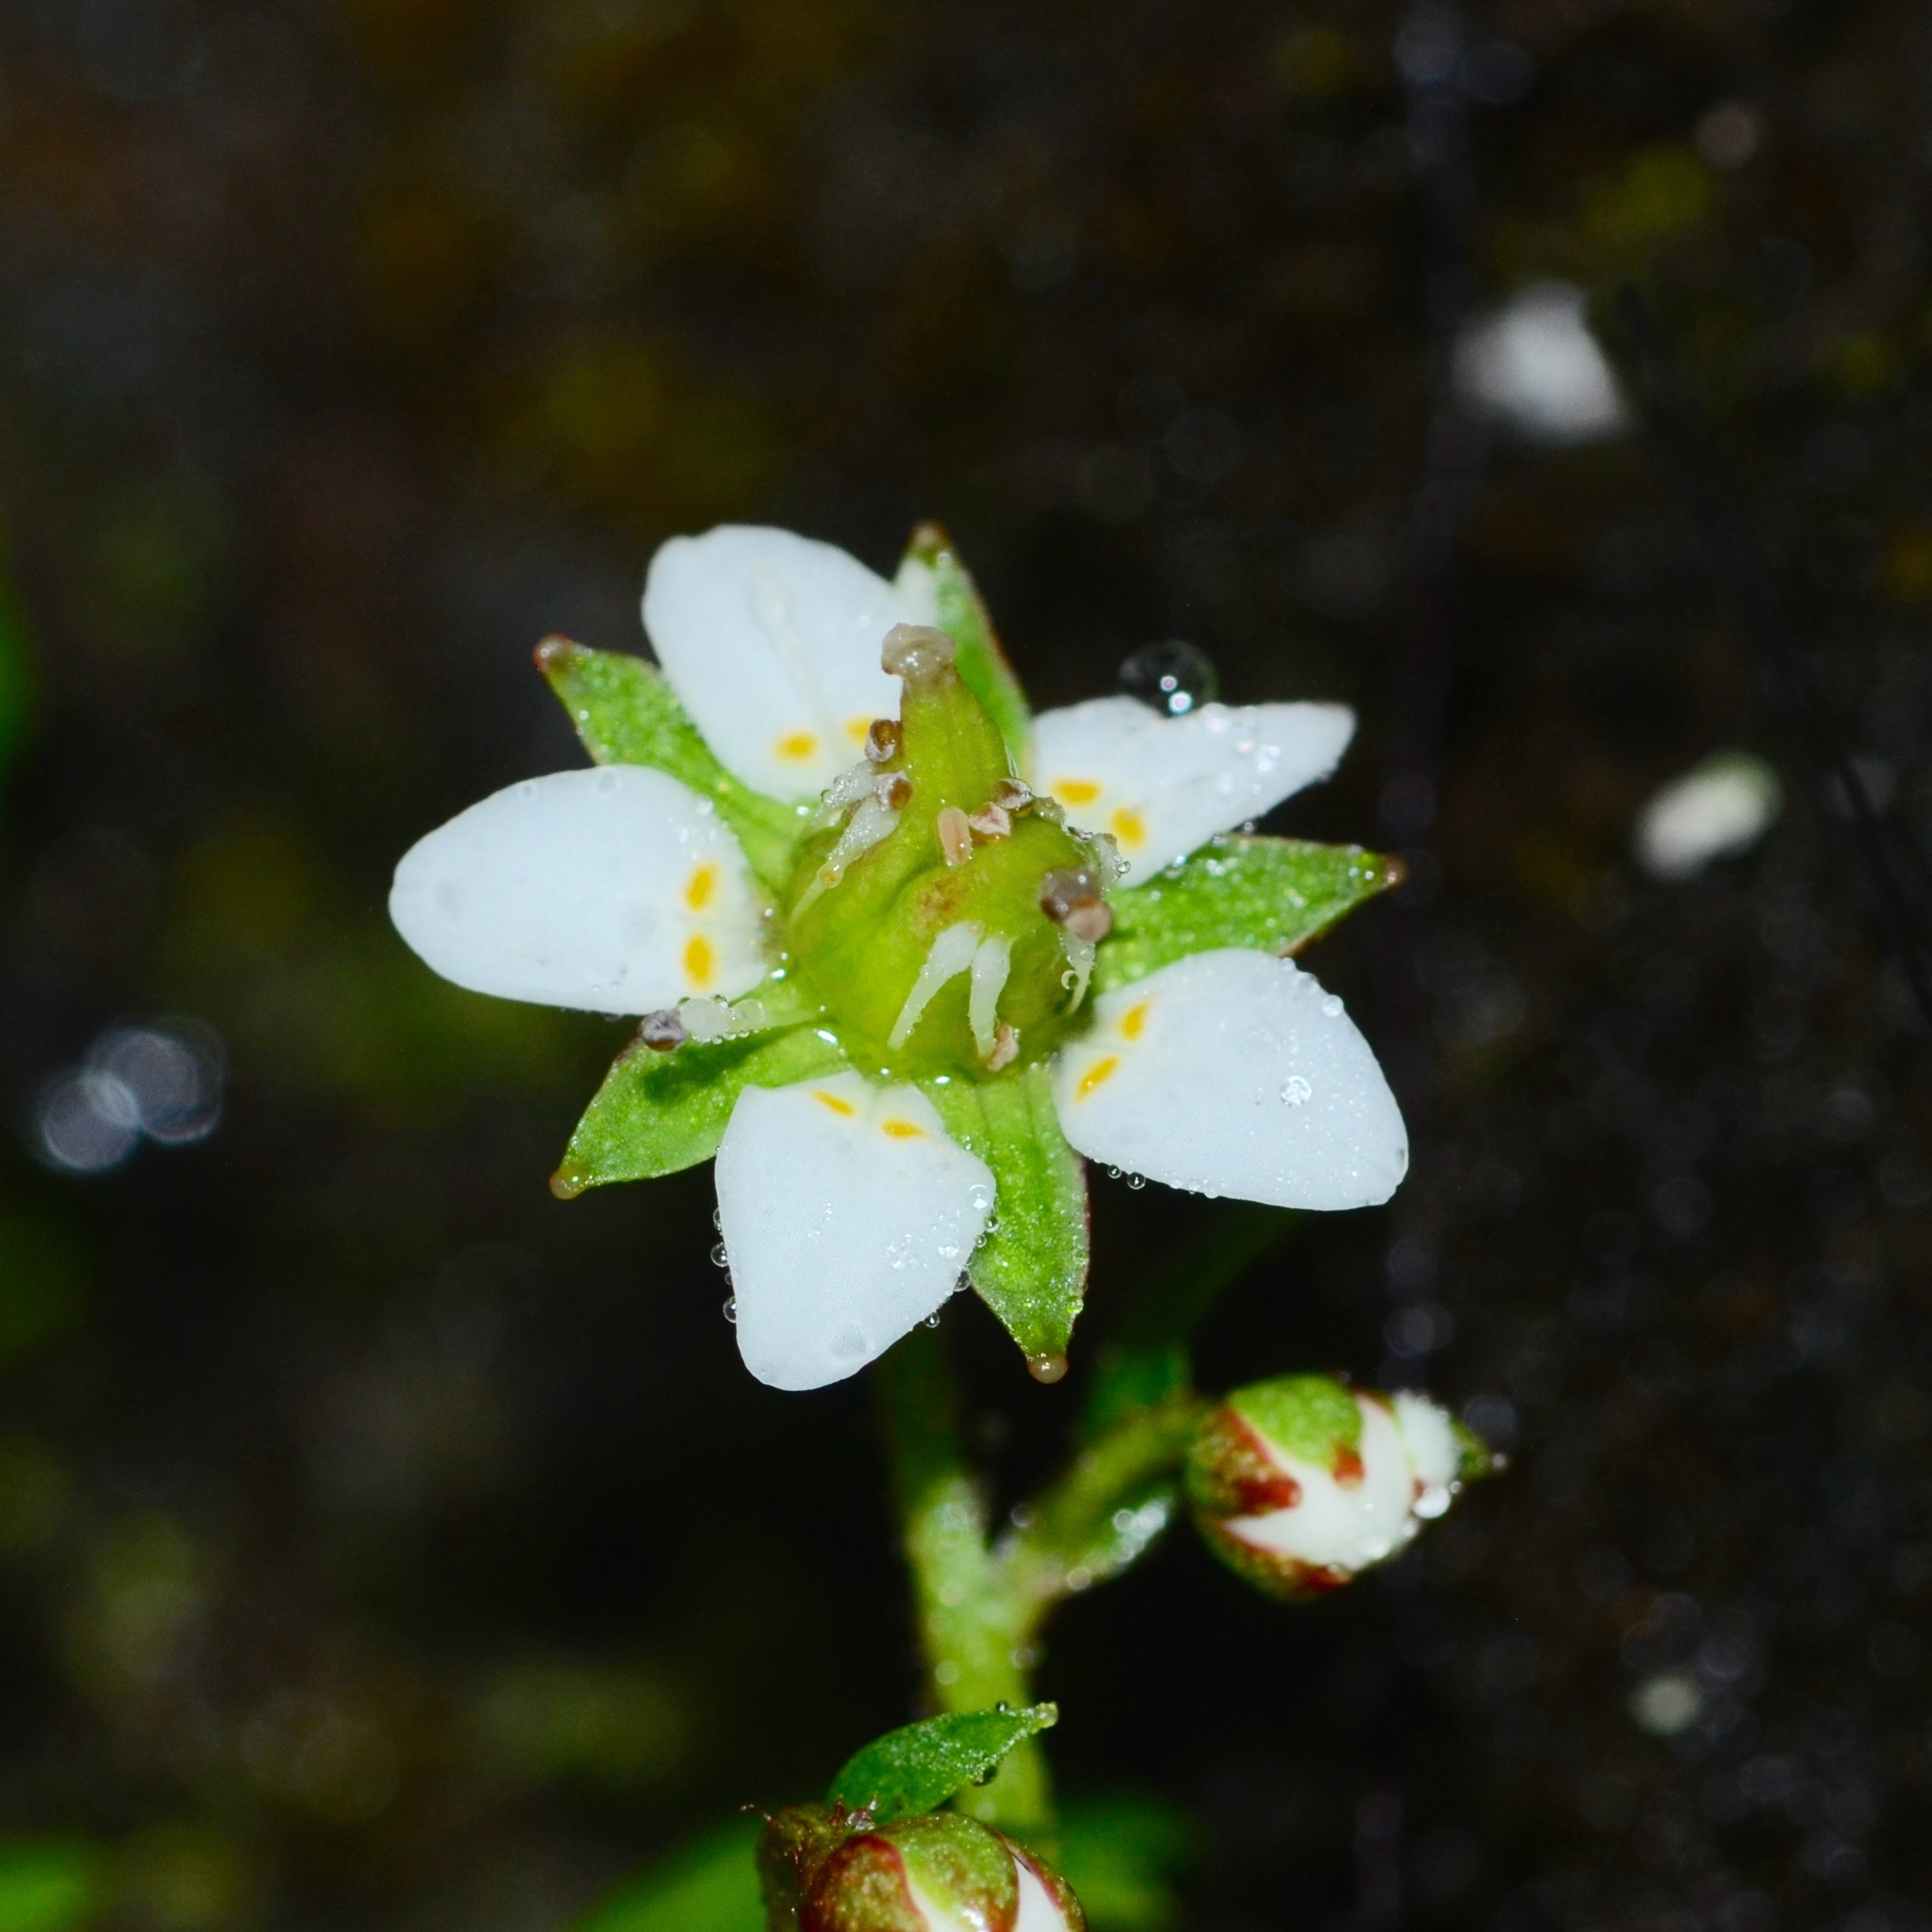 Micranthes clavistaminea  on mt. Jiaozi. Photo by Dr. Chun-lei Xiang.